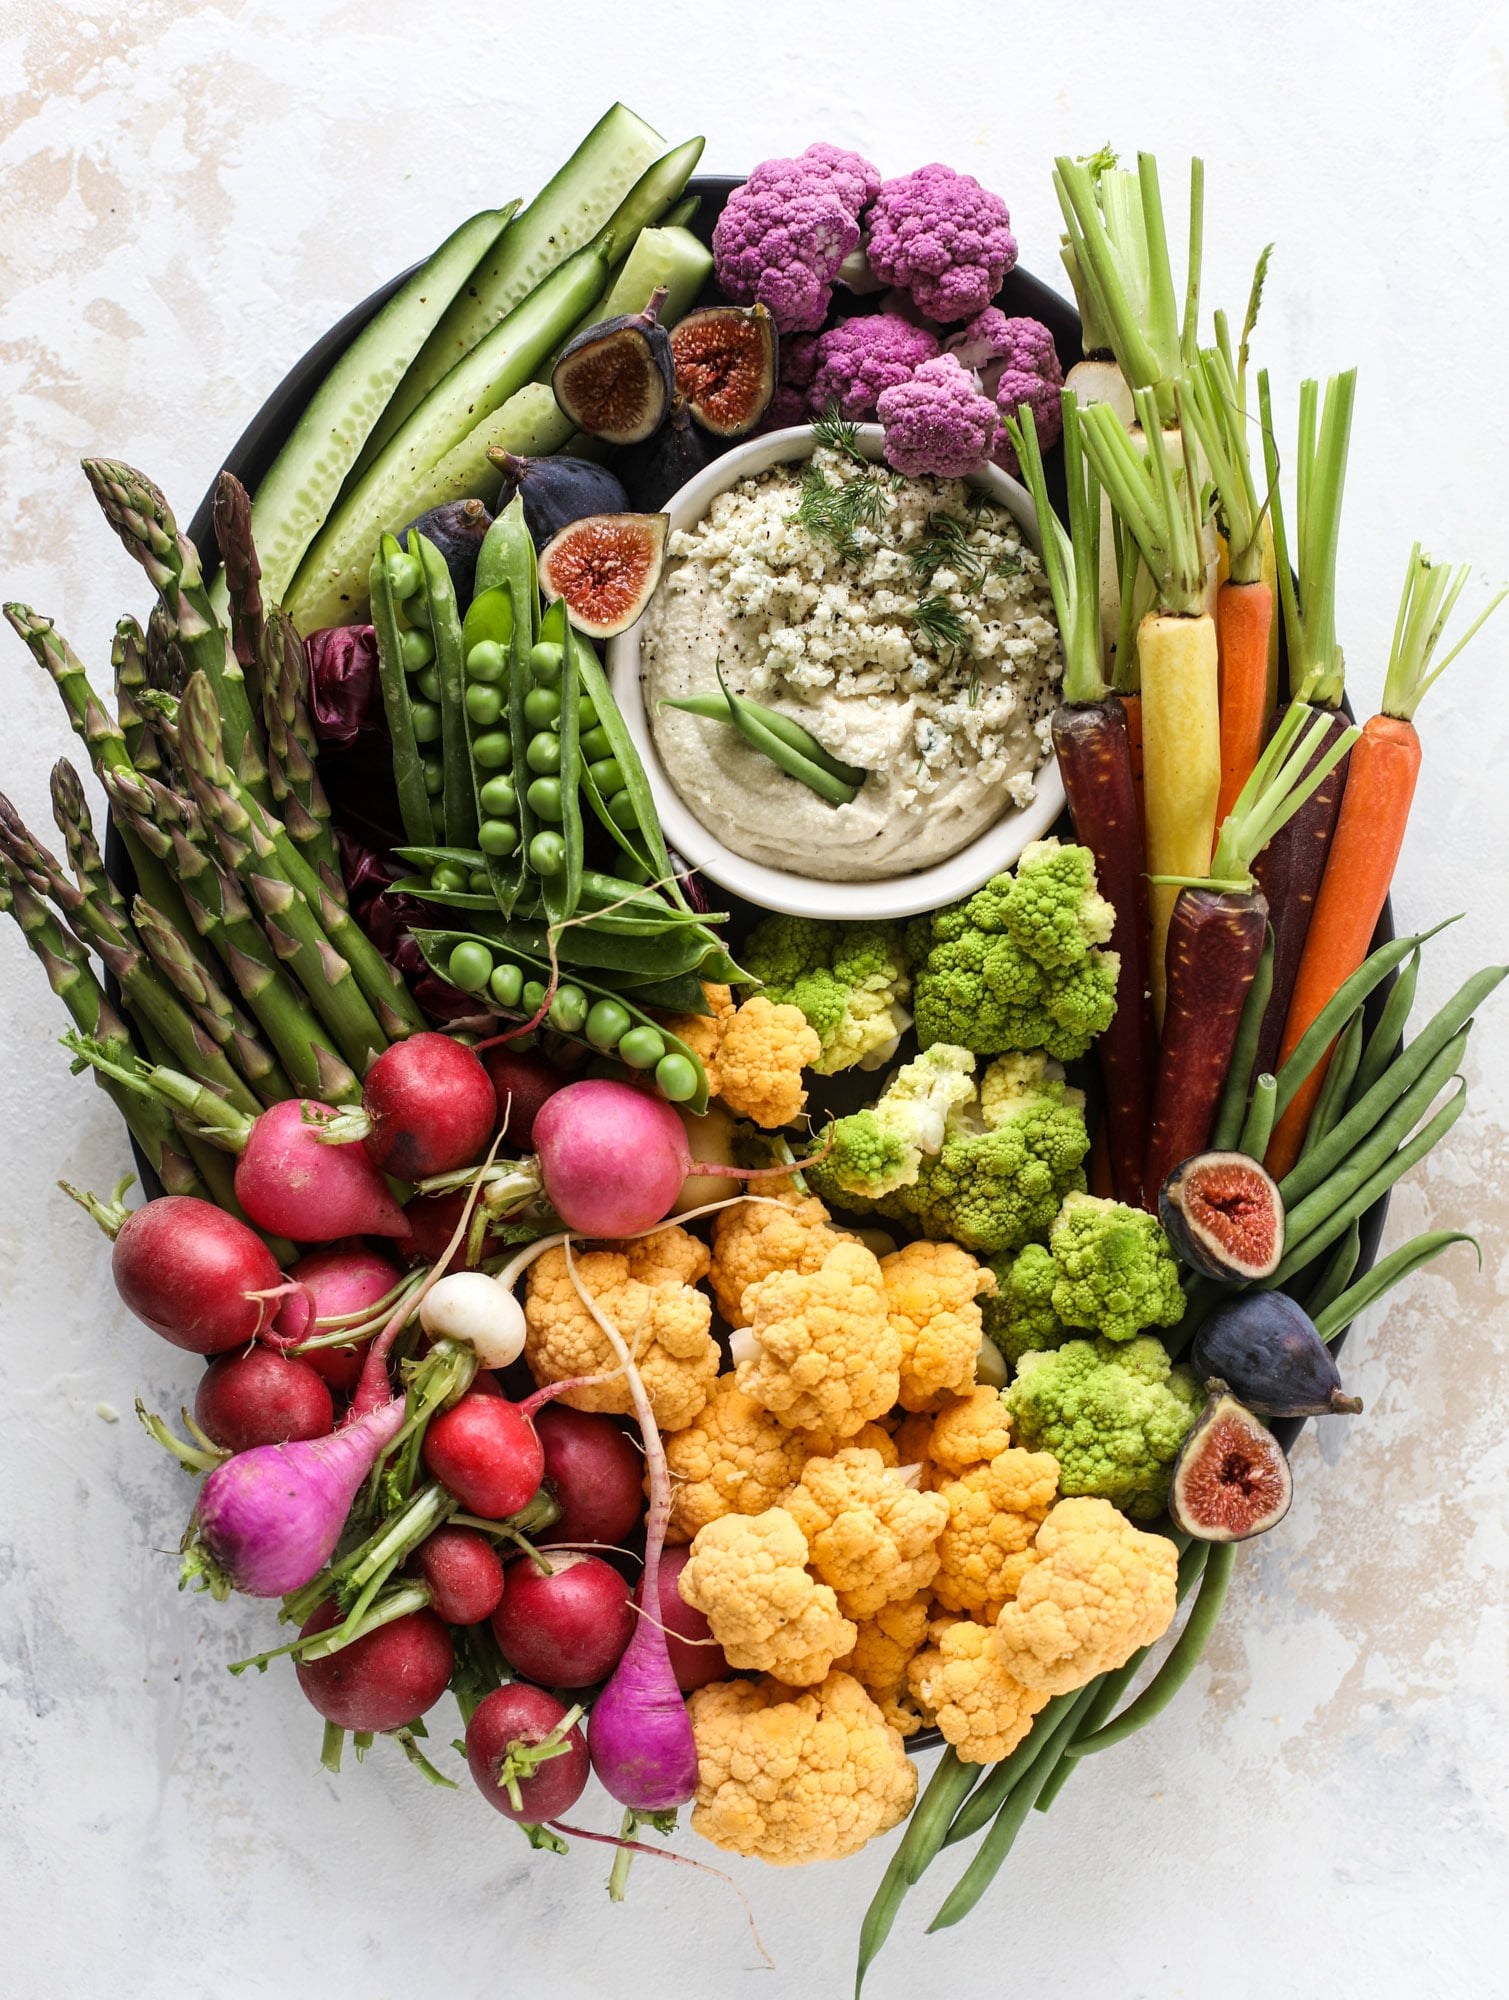 Sharing 18 of my favorite spring recipes, from asparagus to coconut cake to lavender sangria and more!